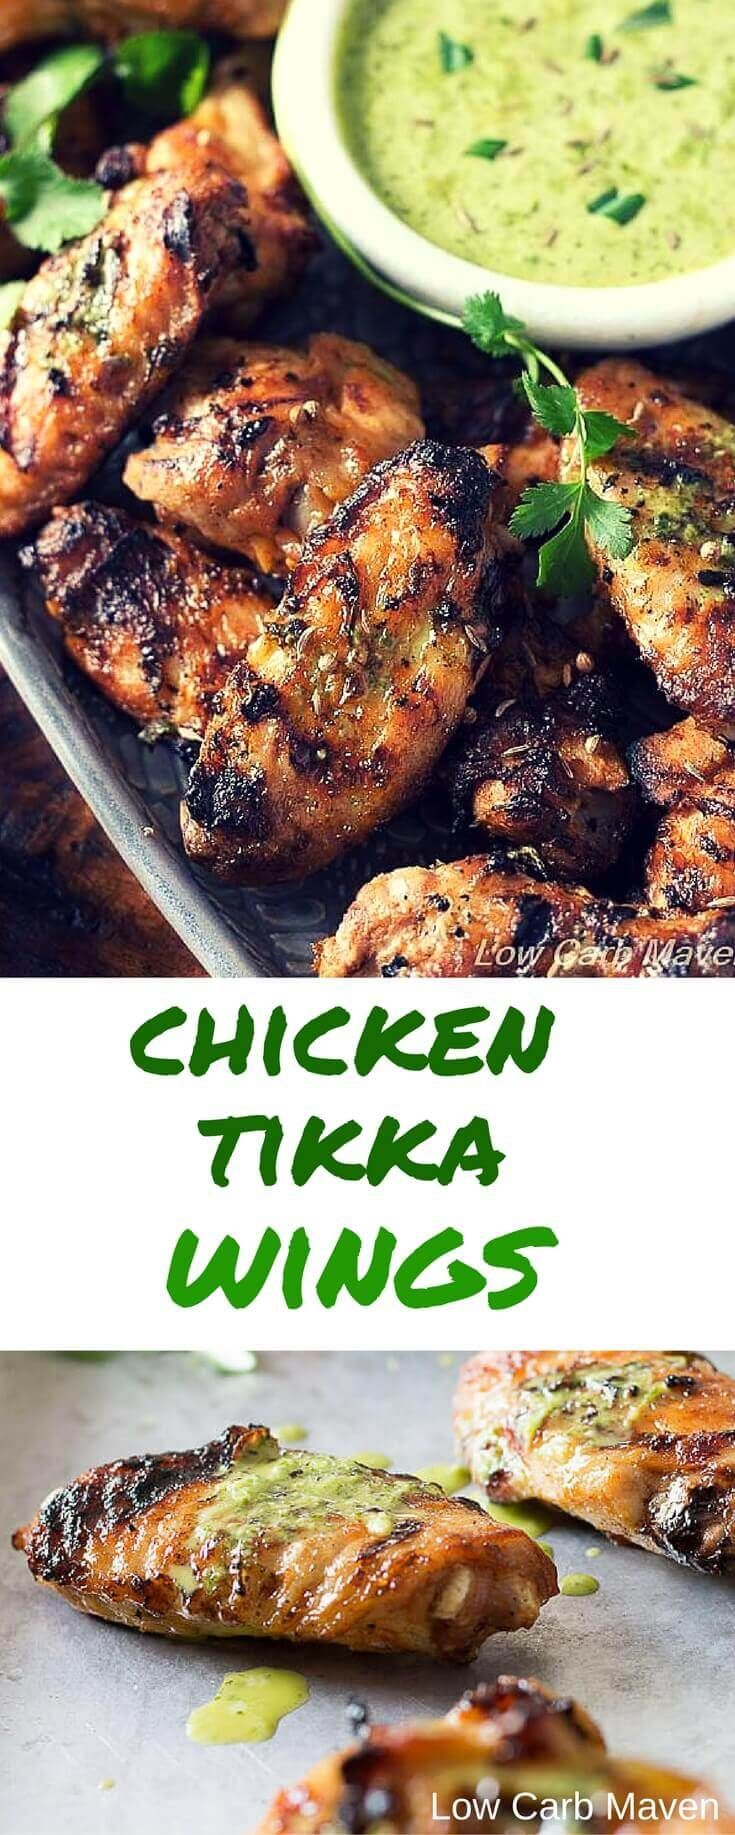 Homemade Indian Tikka Chicken Wings marinated in coconut milk & Indian spices, cooked on the grill and then served with a bright citrus-cilantro sauce.